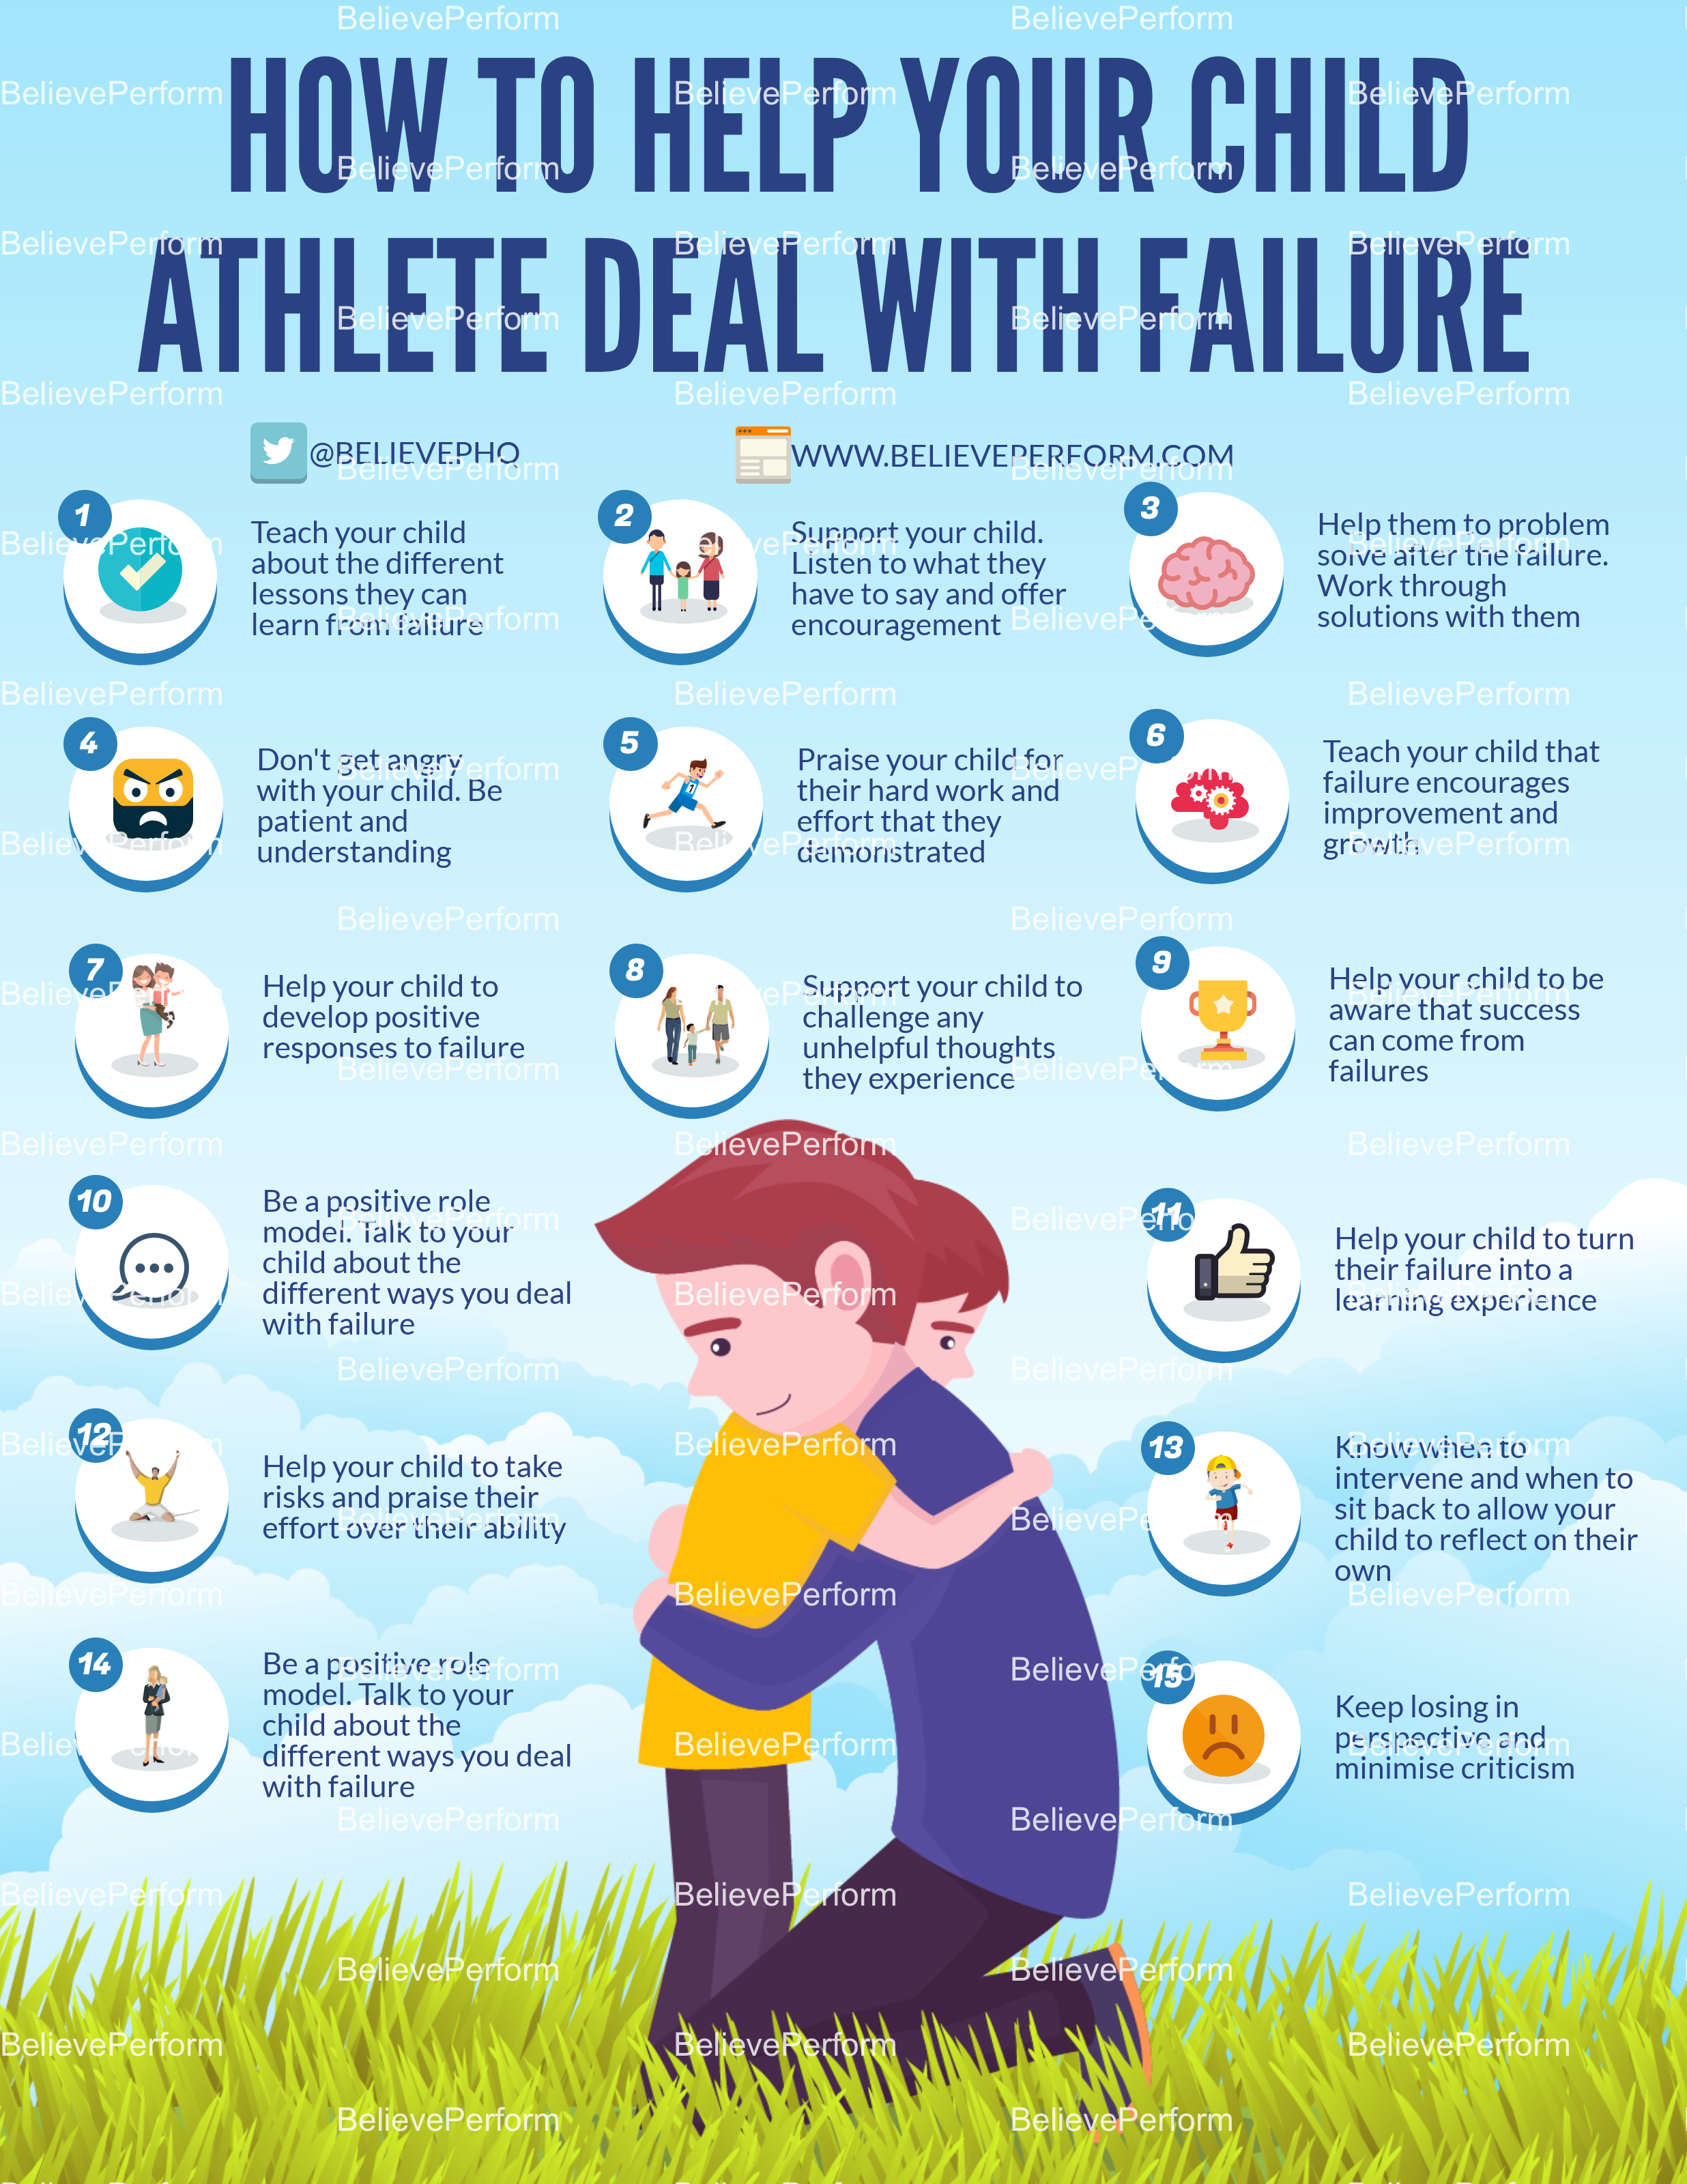 How to help your child athlete deal with failure